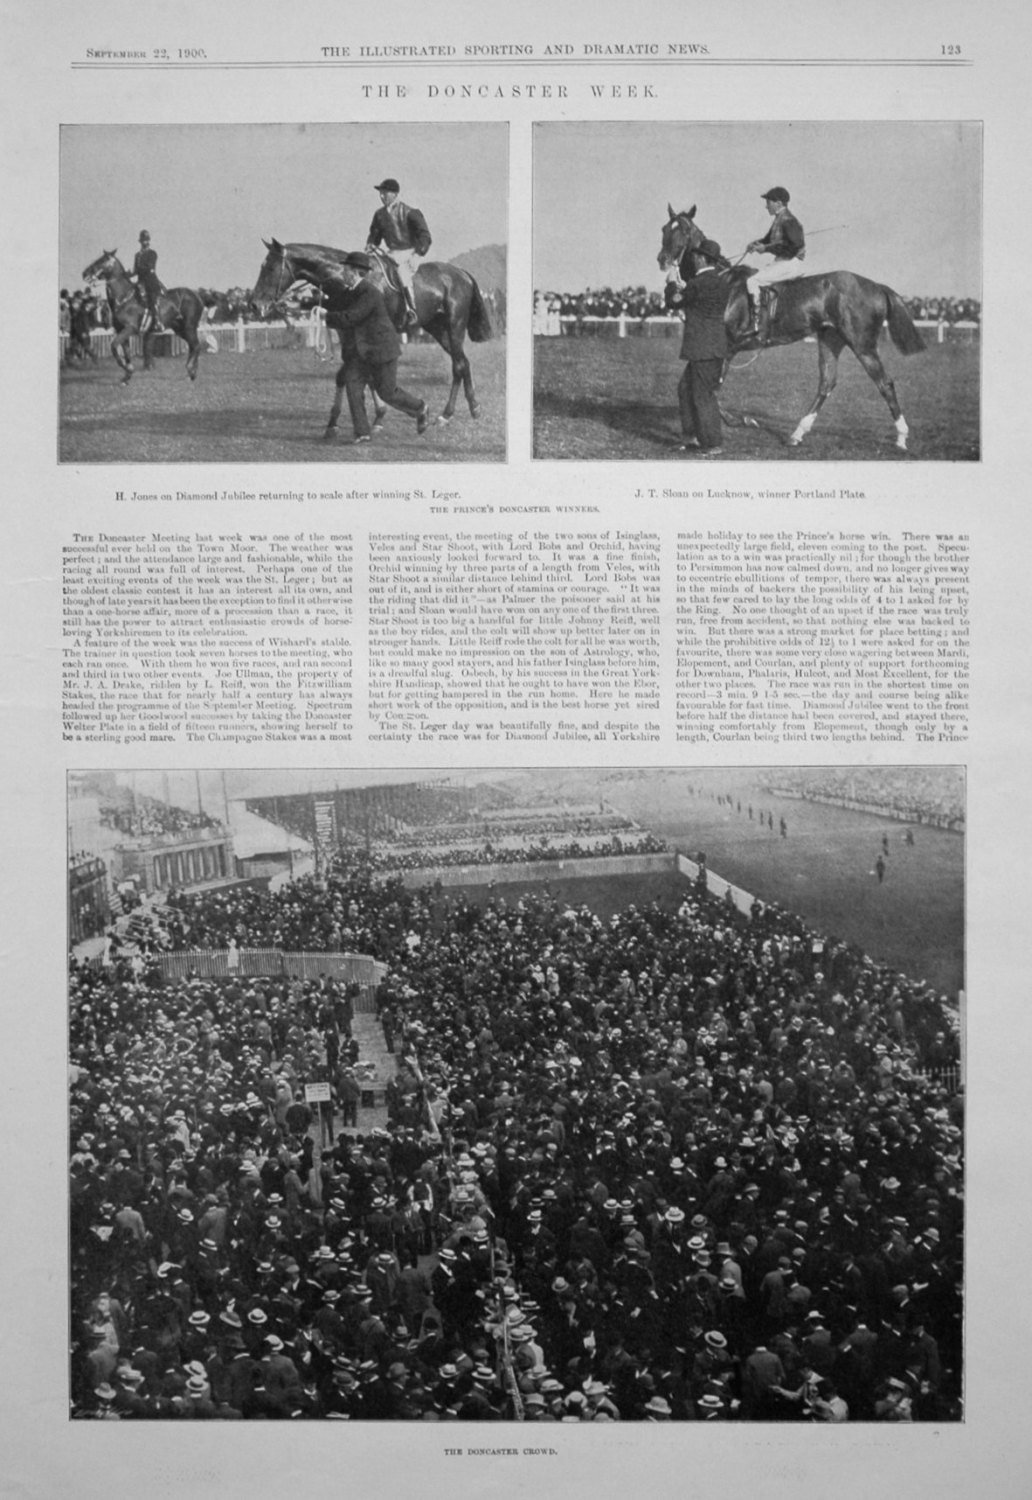 The Doncaster Week, 1900.